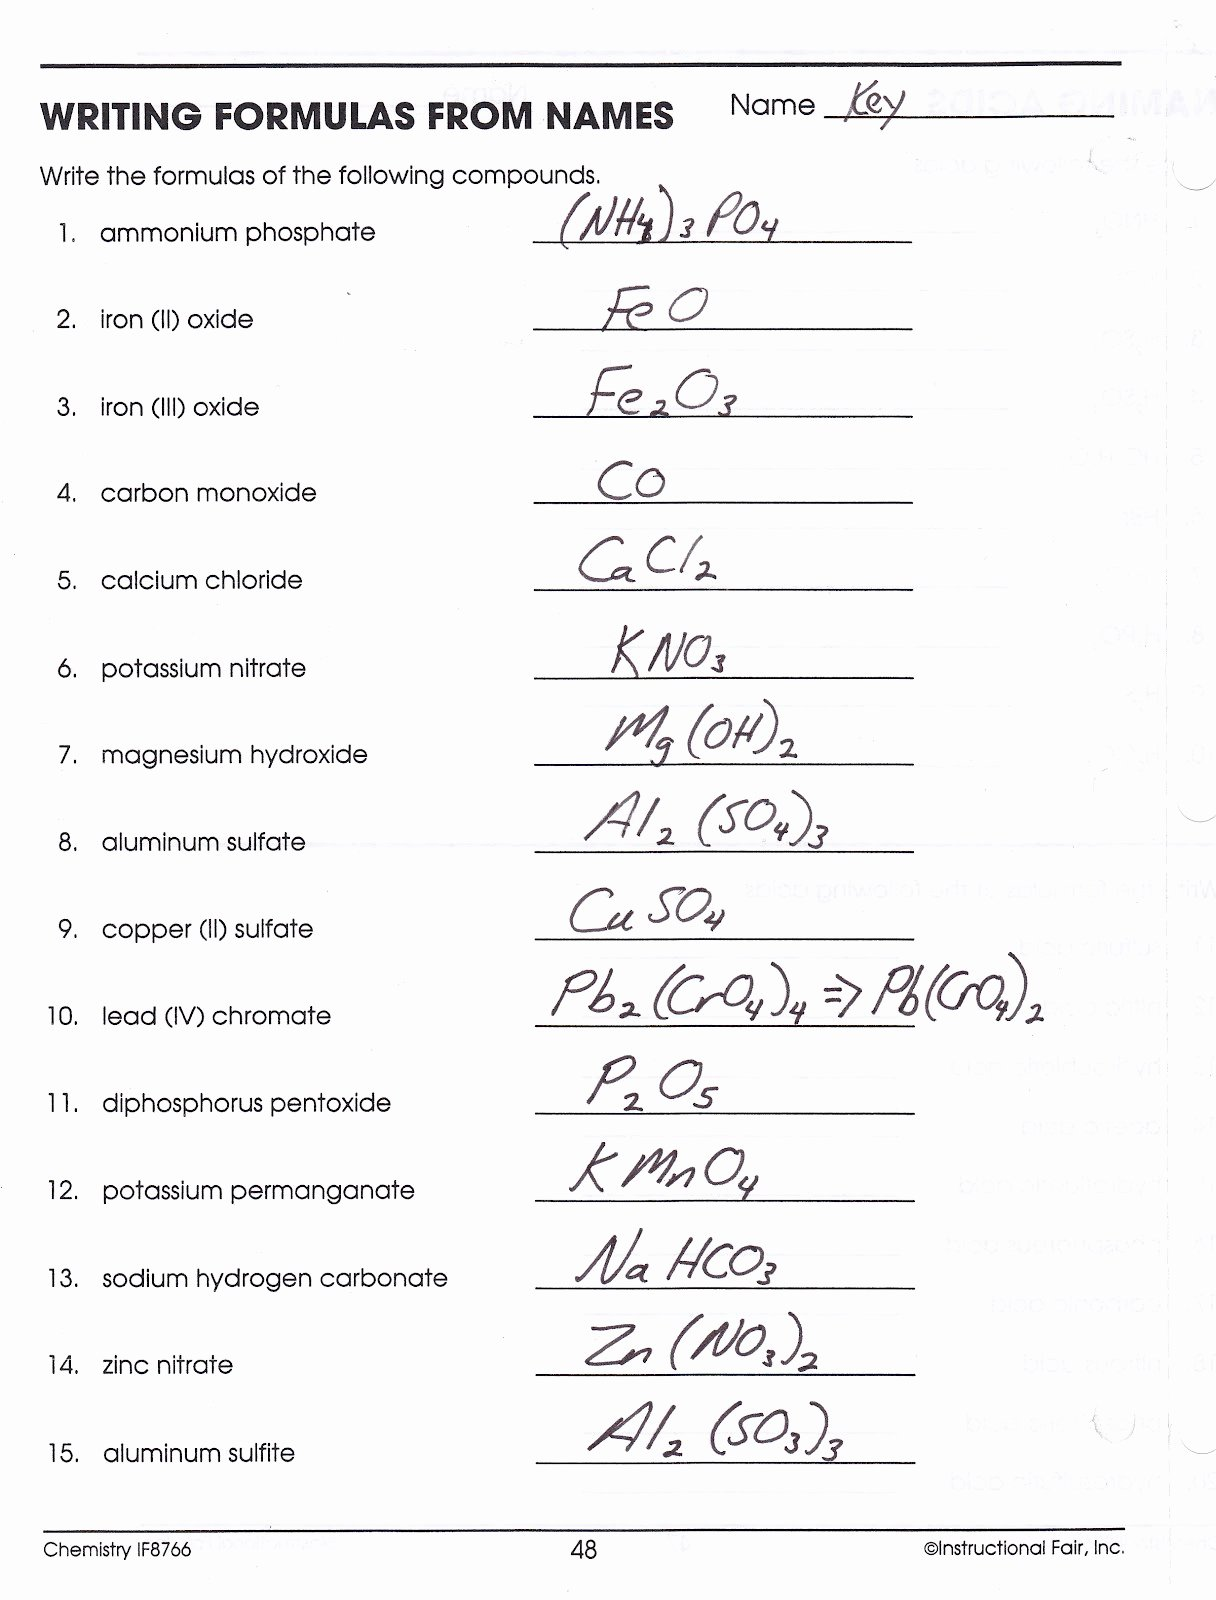 50 Chemical Formula Worksheet Answers